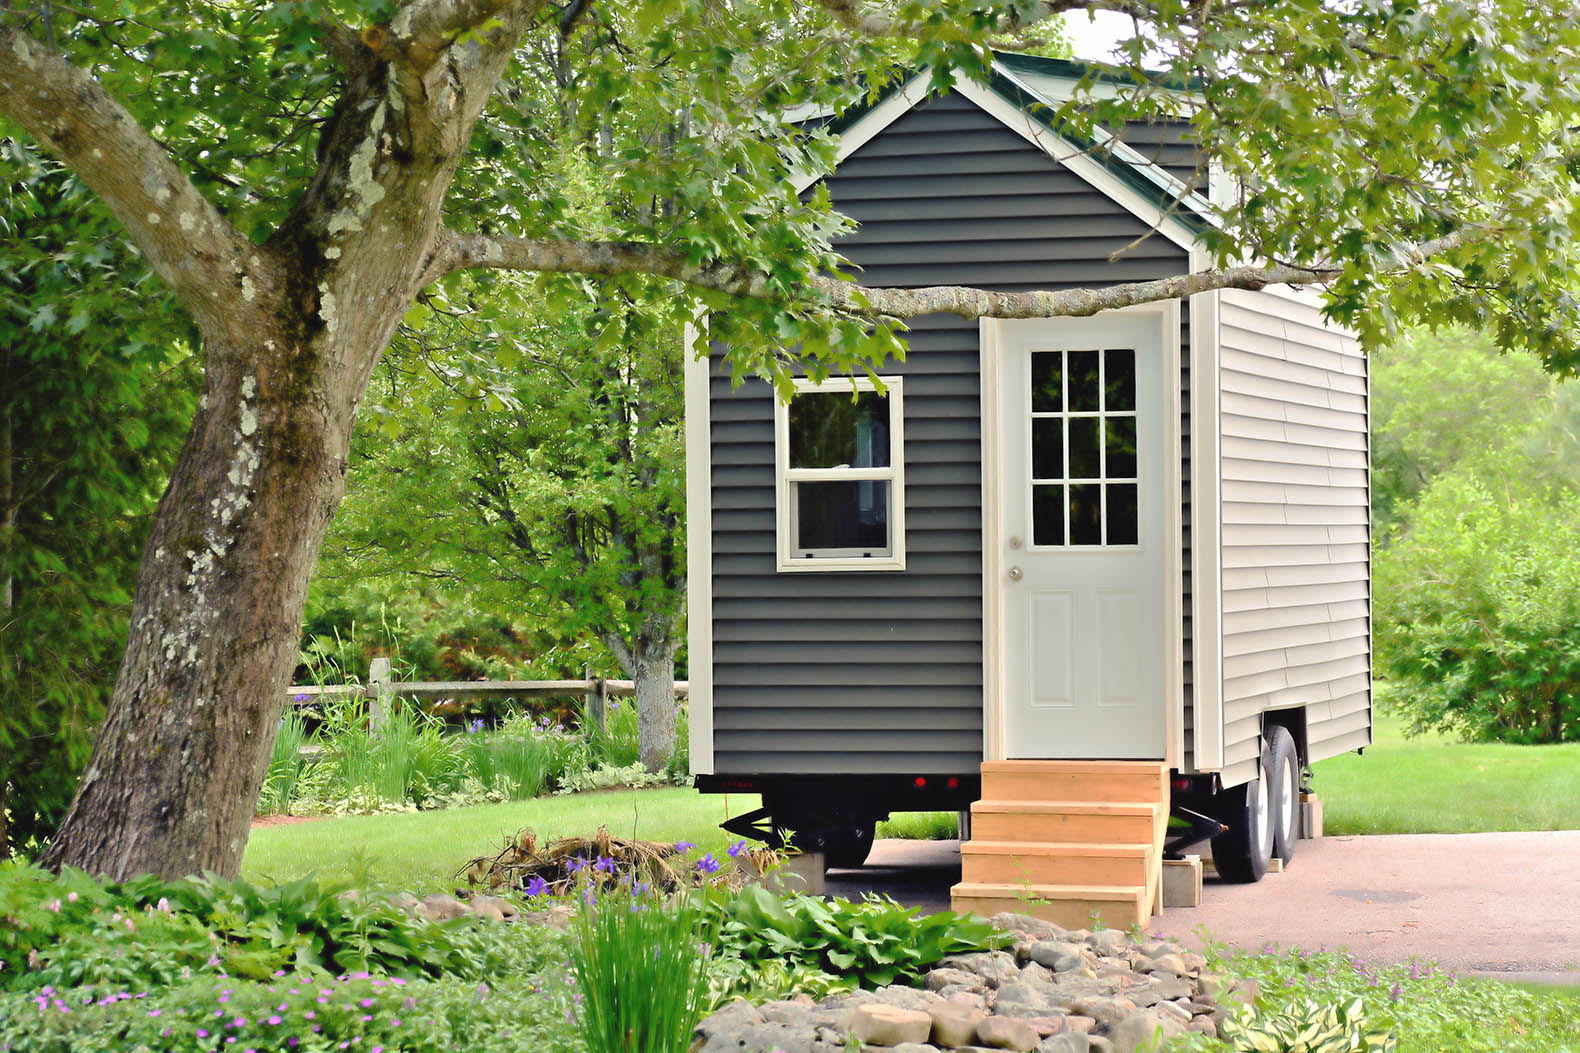 Keep your tiny home safe with these 9 security tips